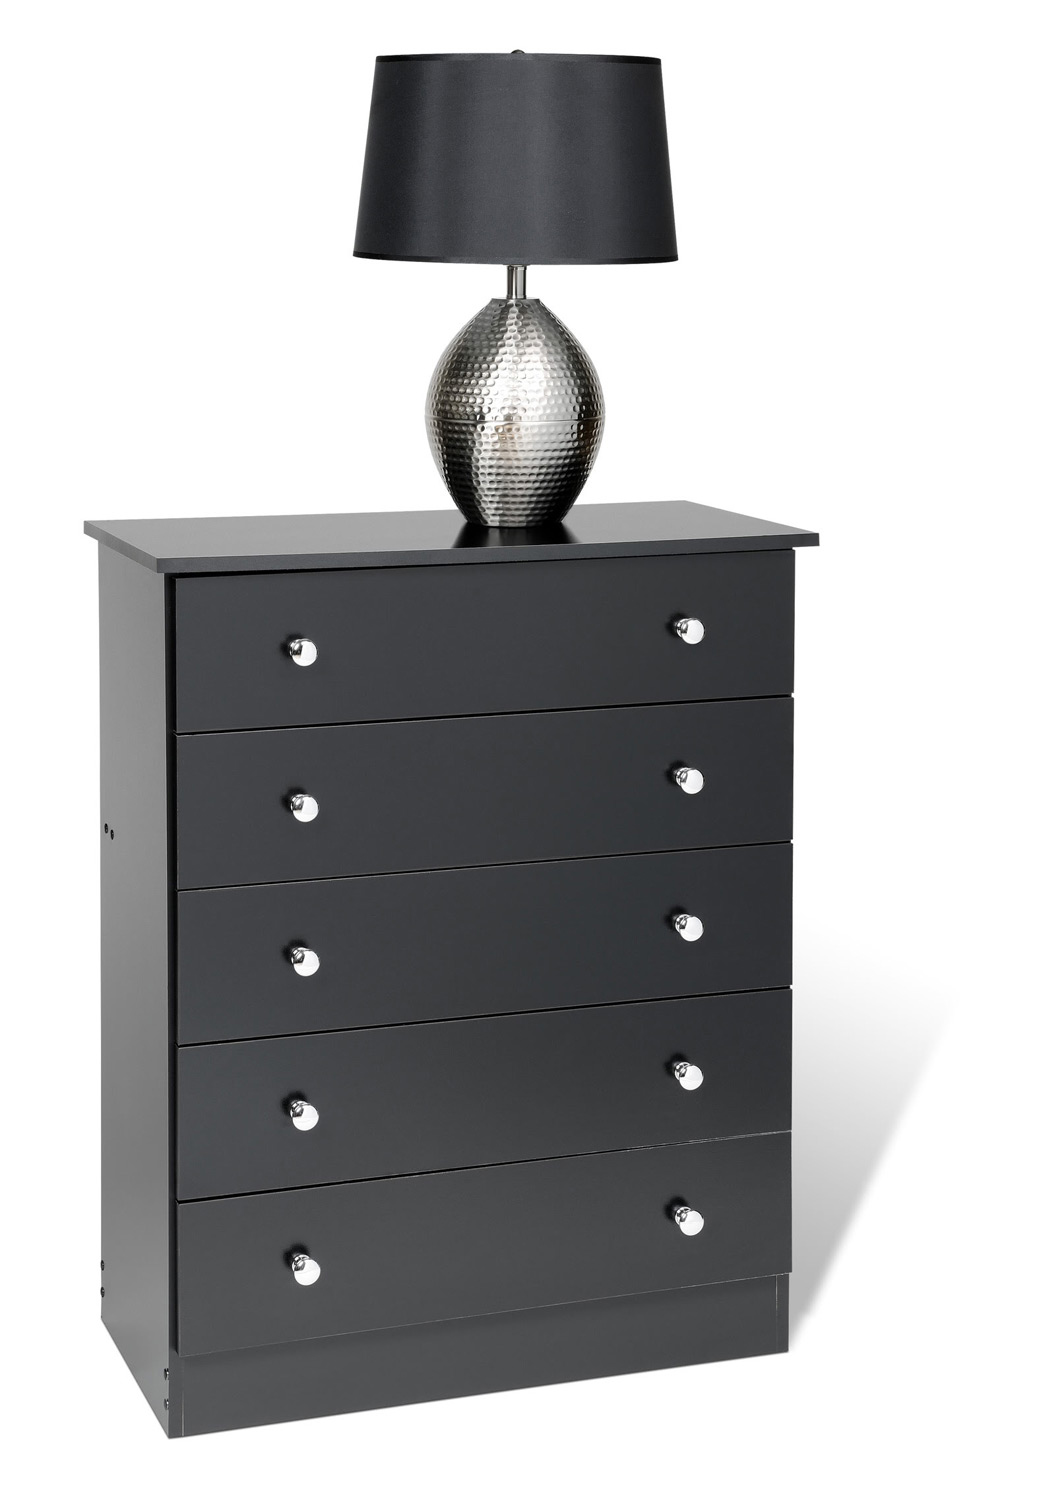 Prepac Edenvale 5 Drawer Chest - Black